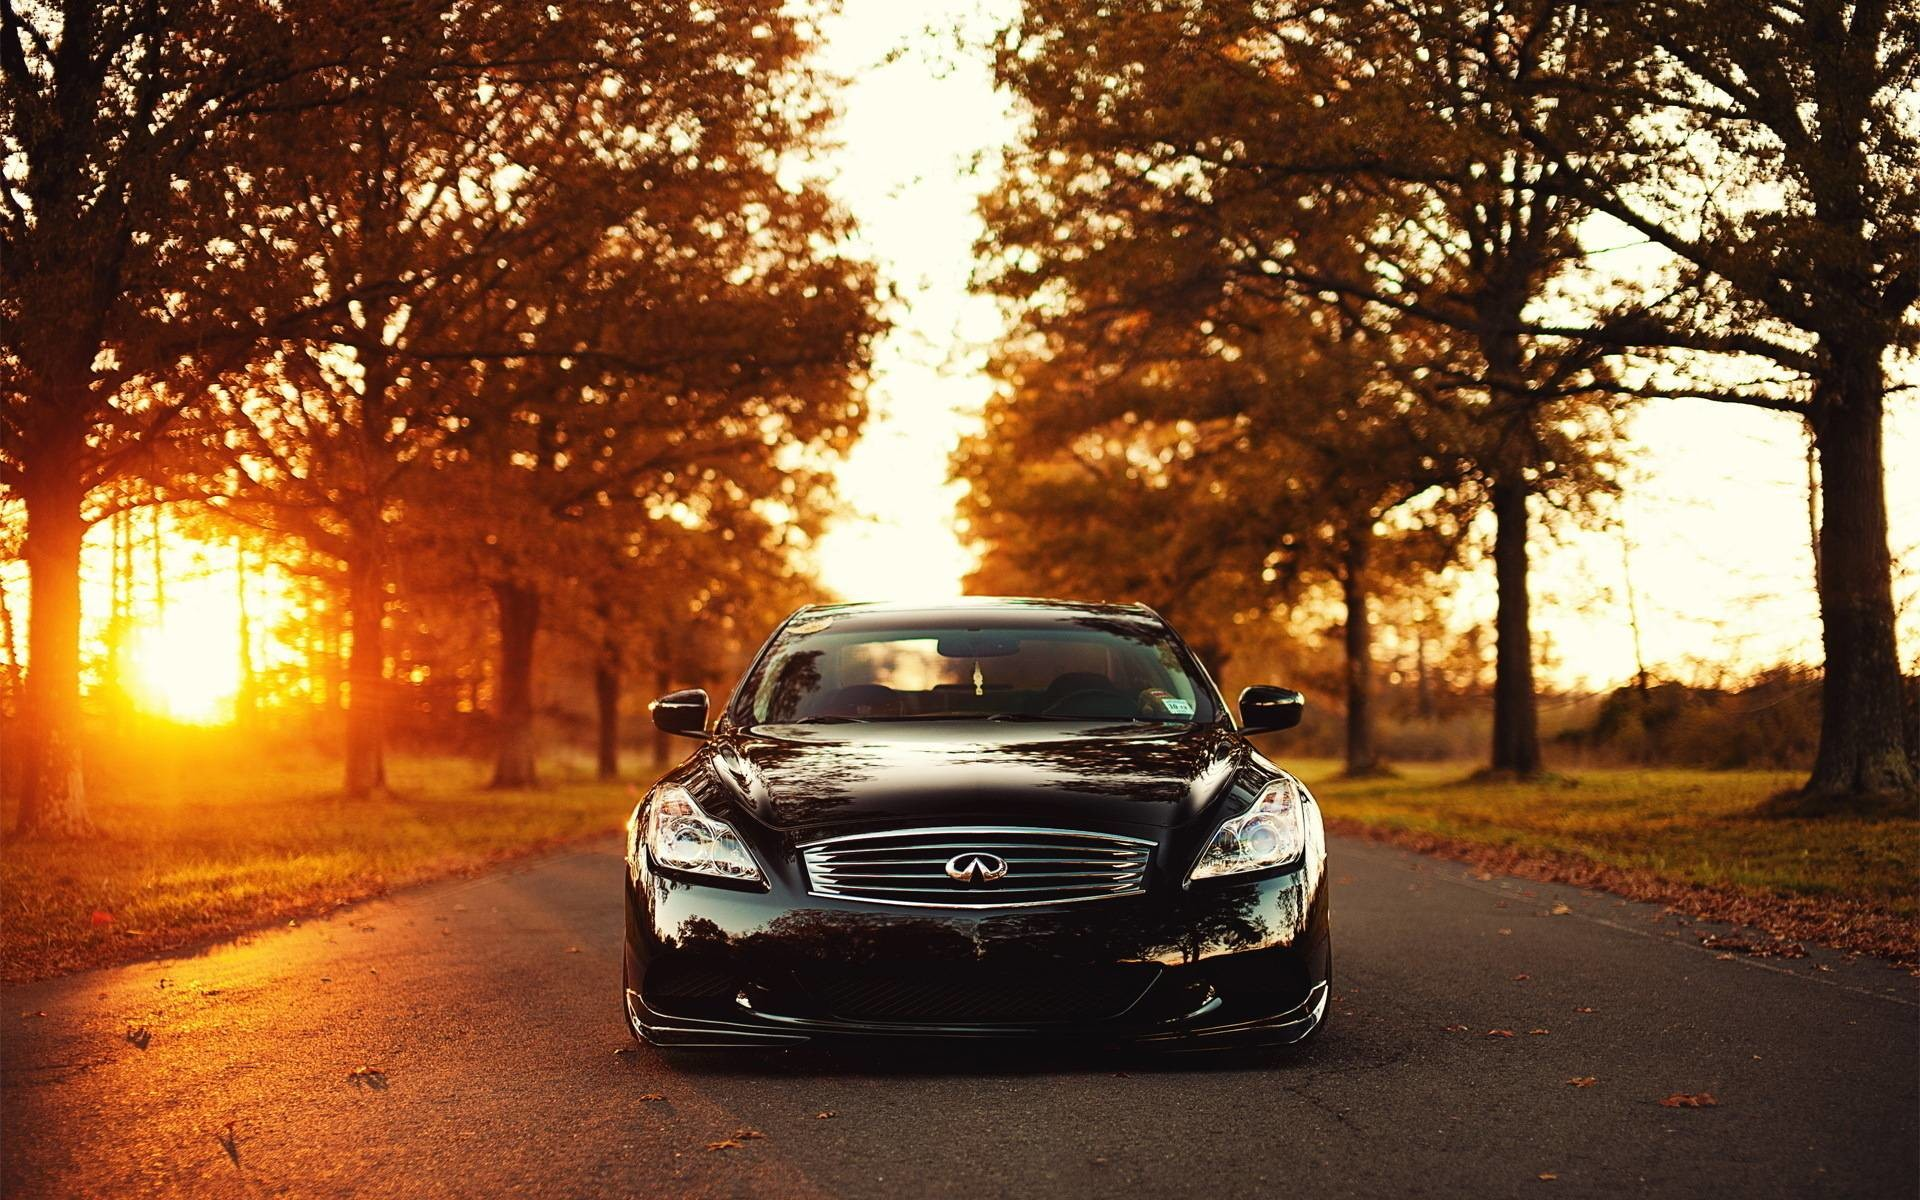 74 Infiniti G37 Wallpapers on WallpaperPlay 1920x1200